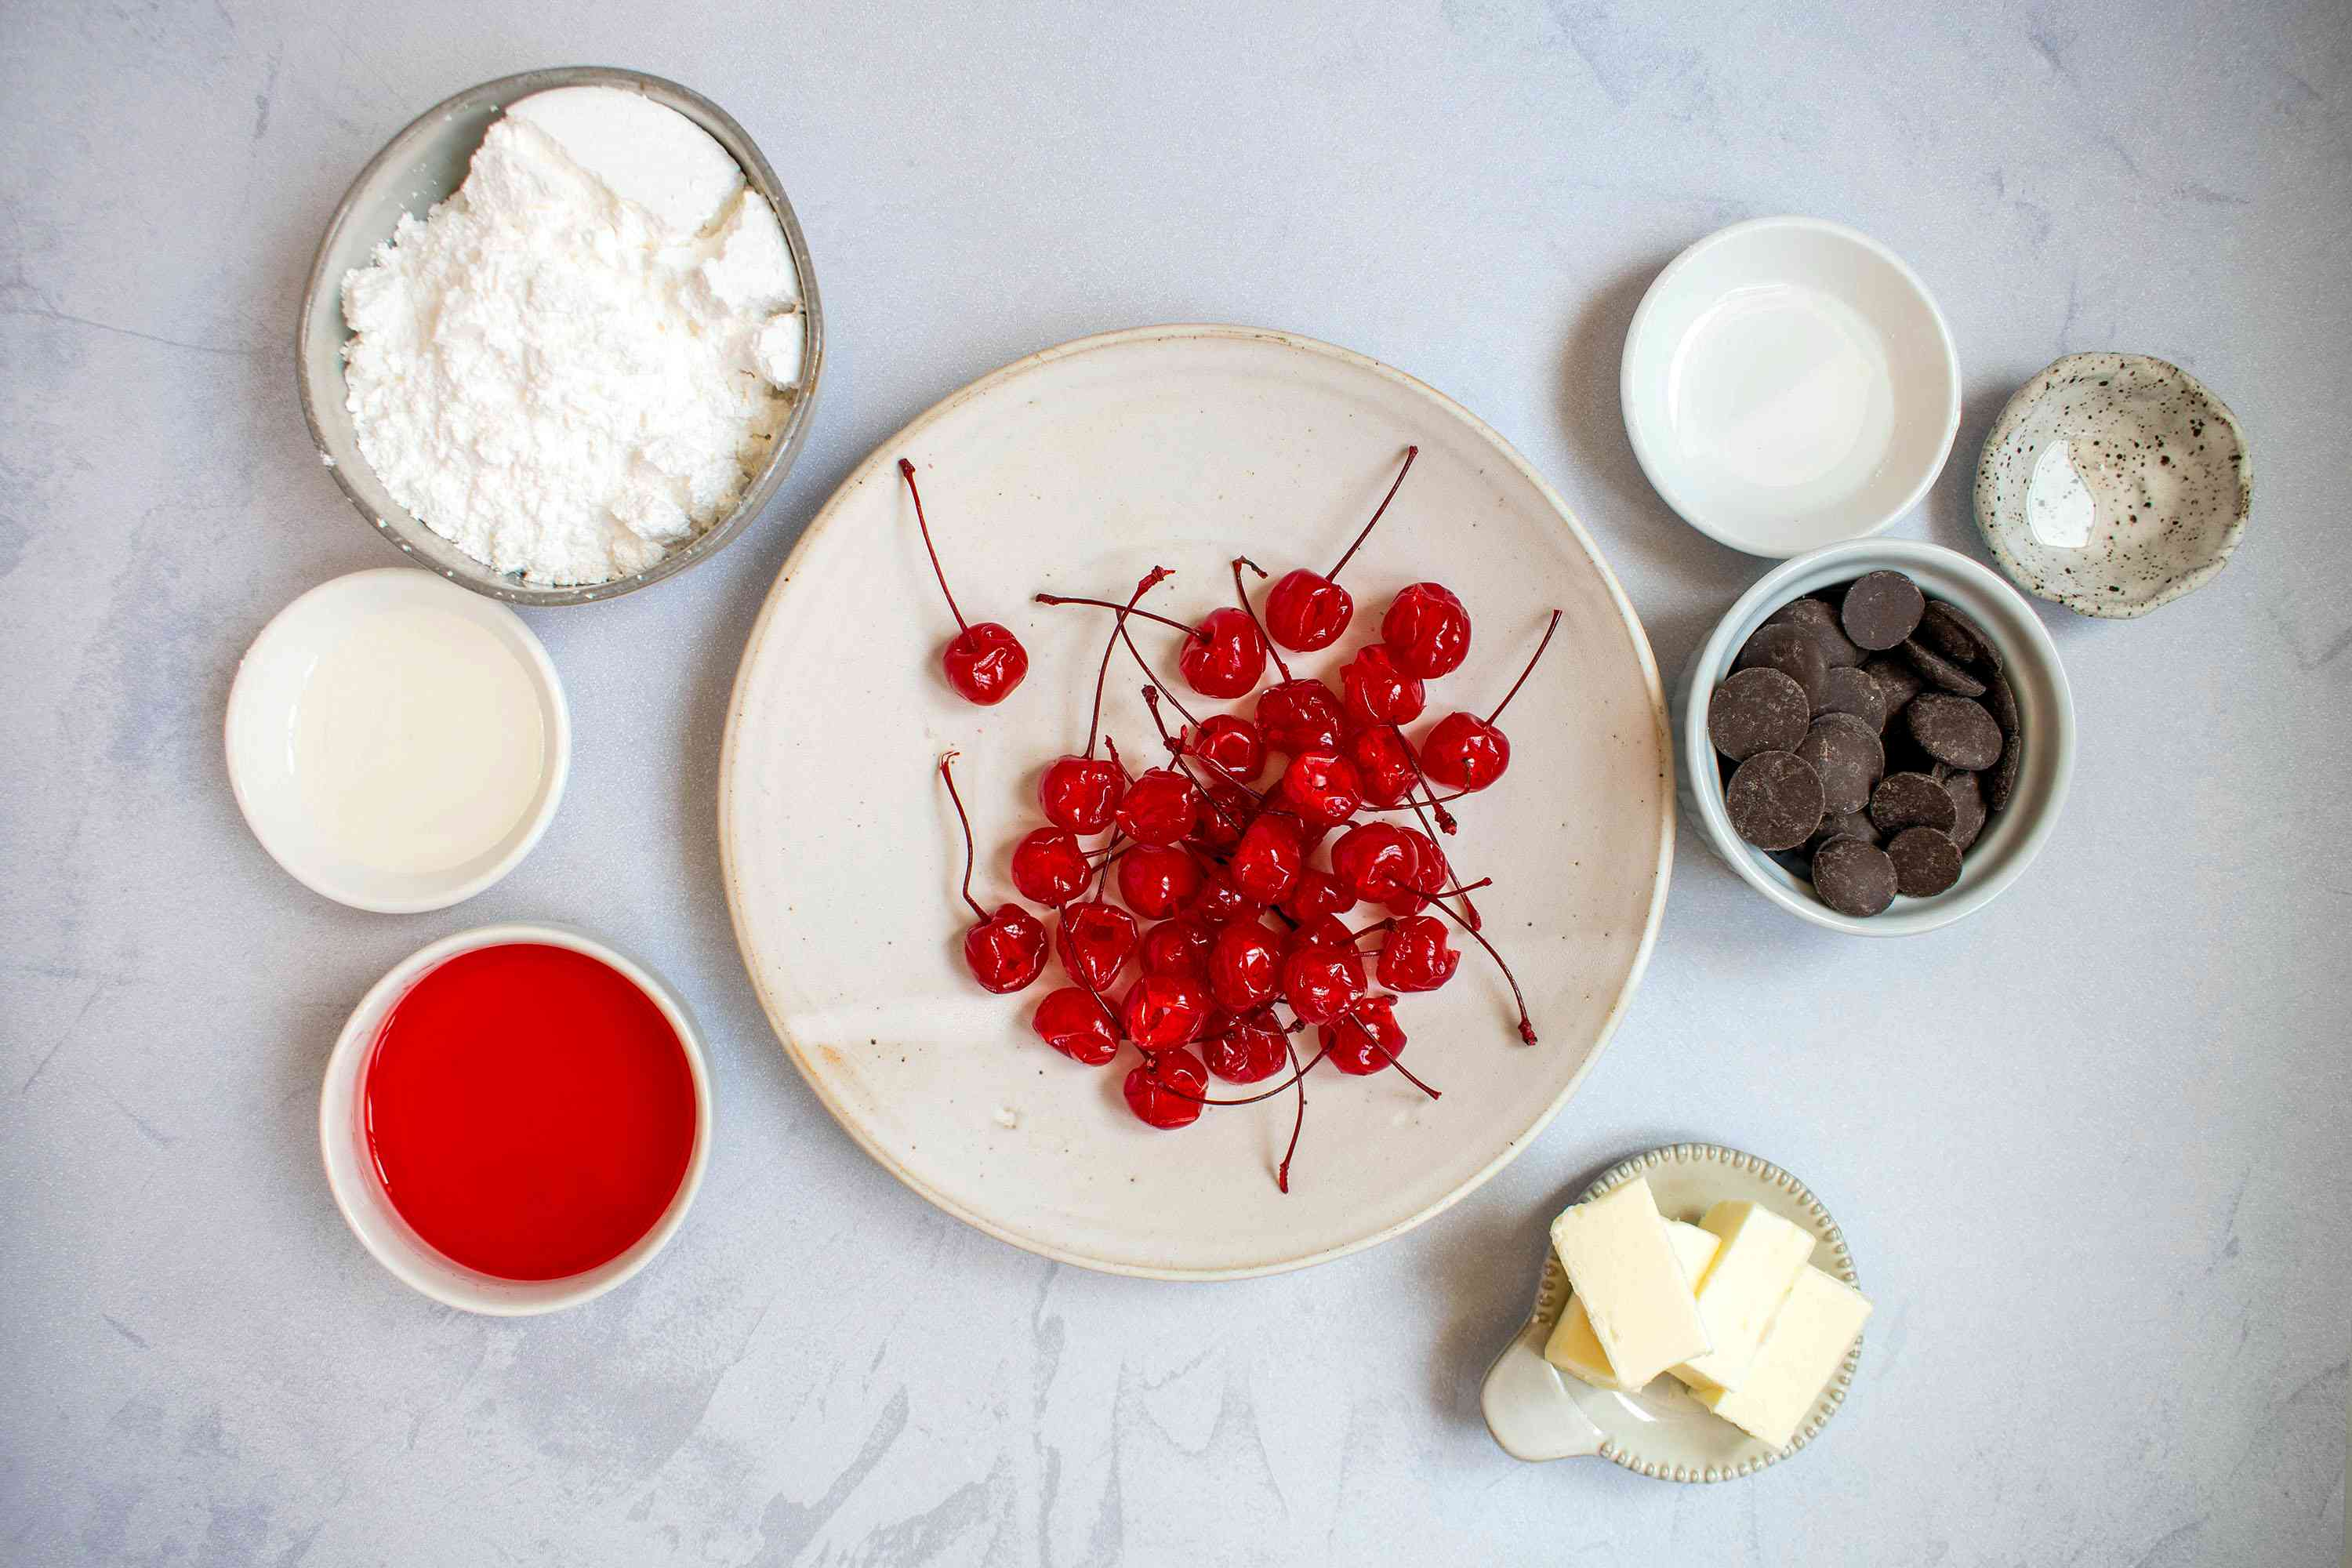 Ingredients for homemade chocolate-covered cherries